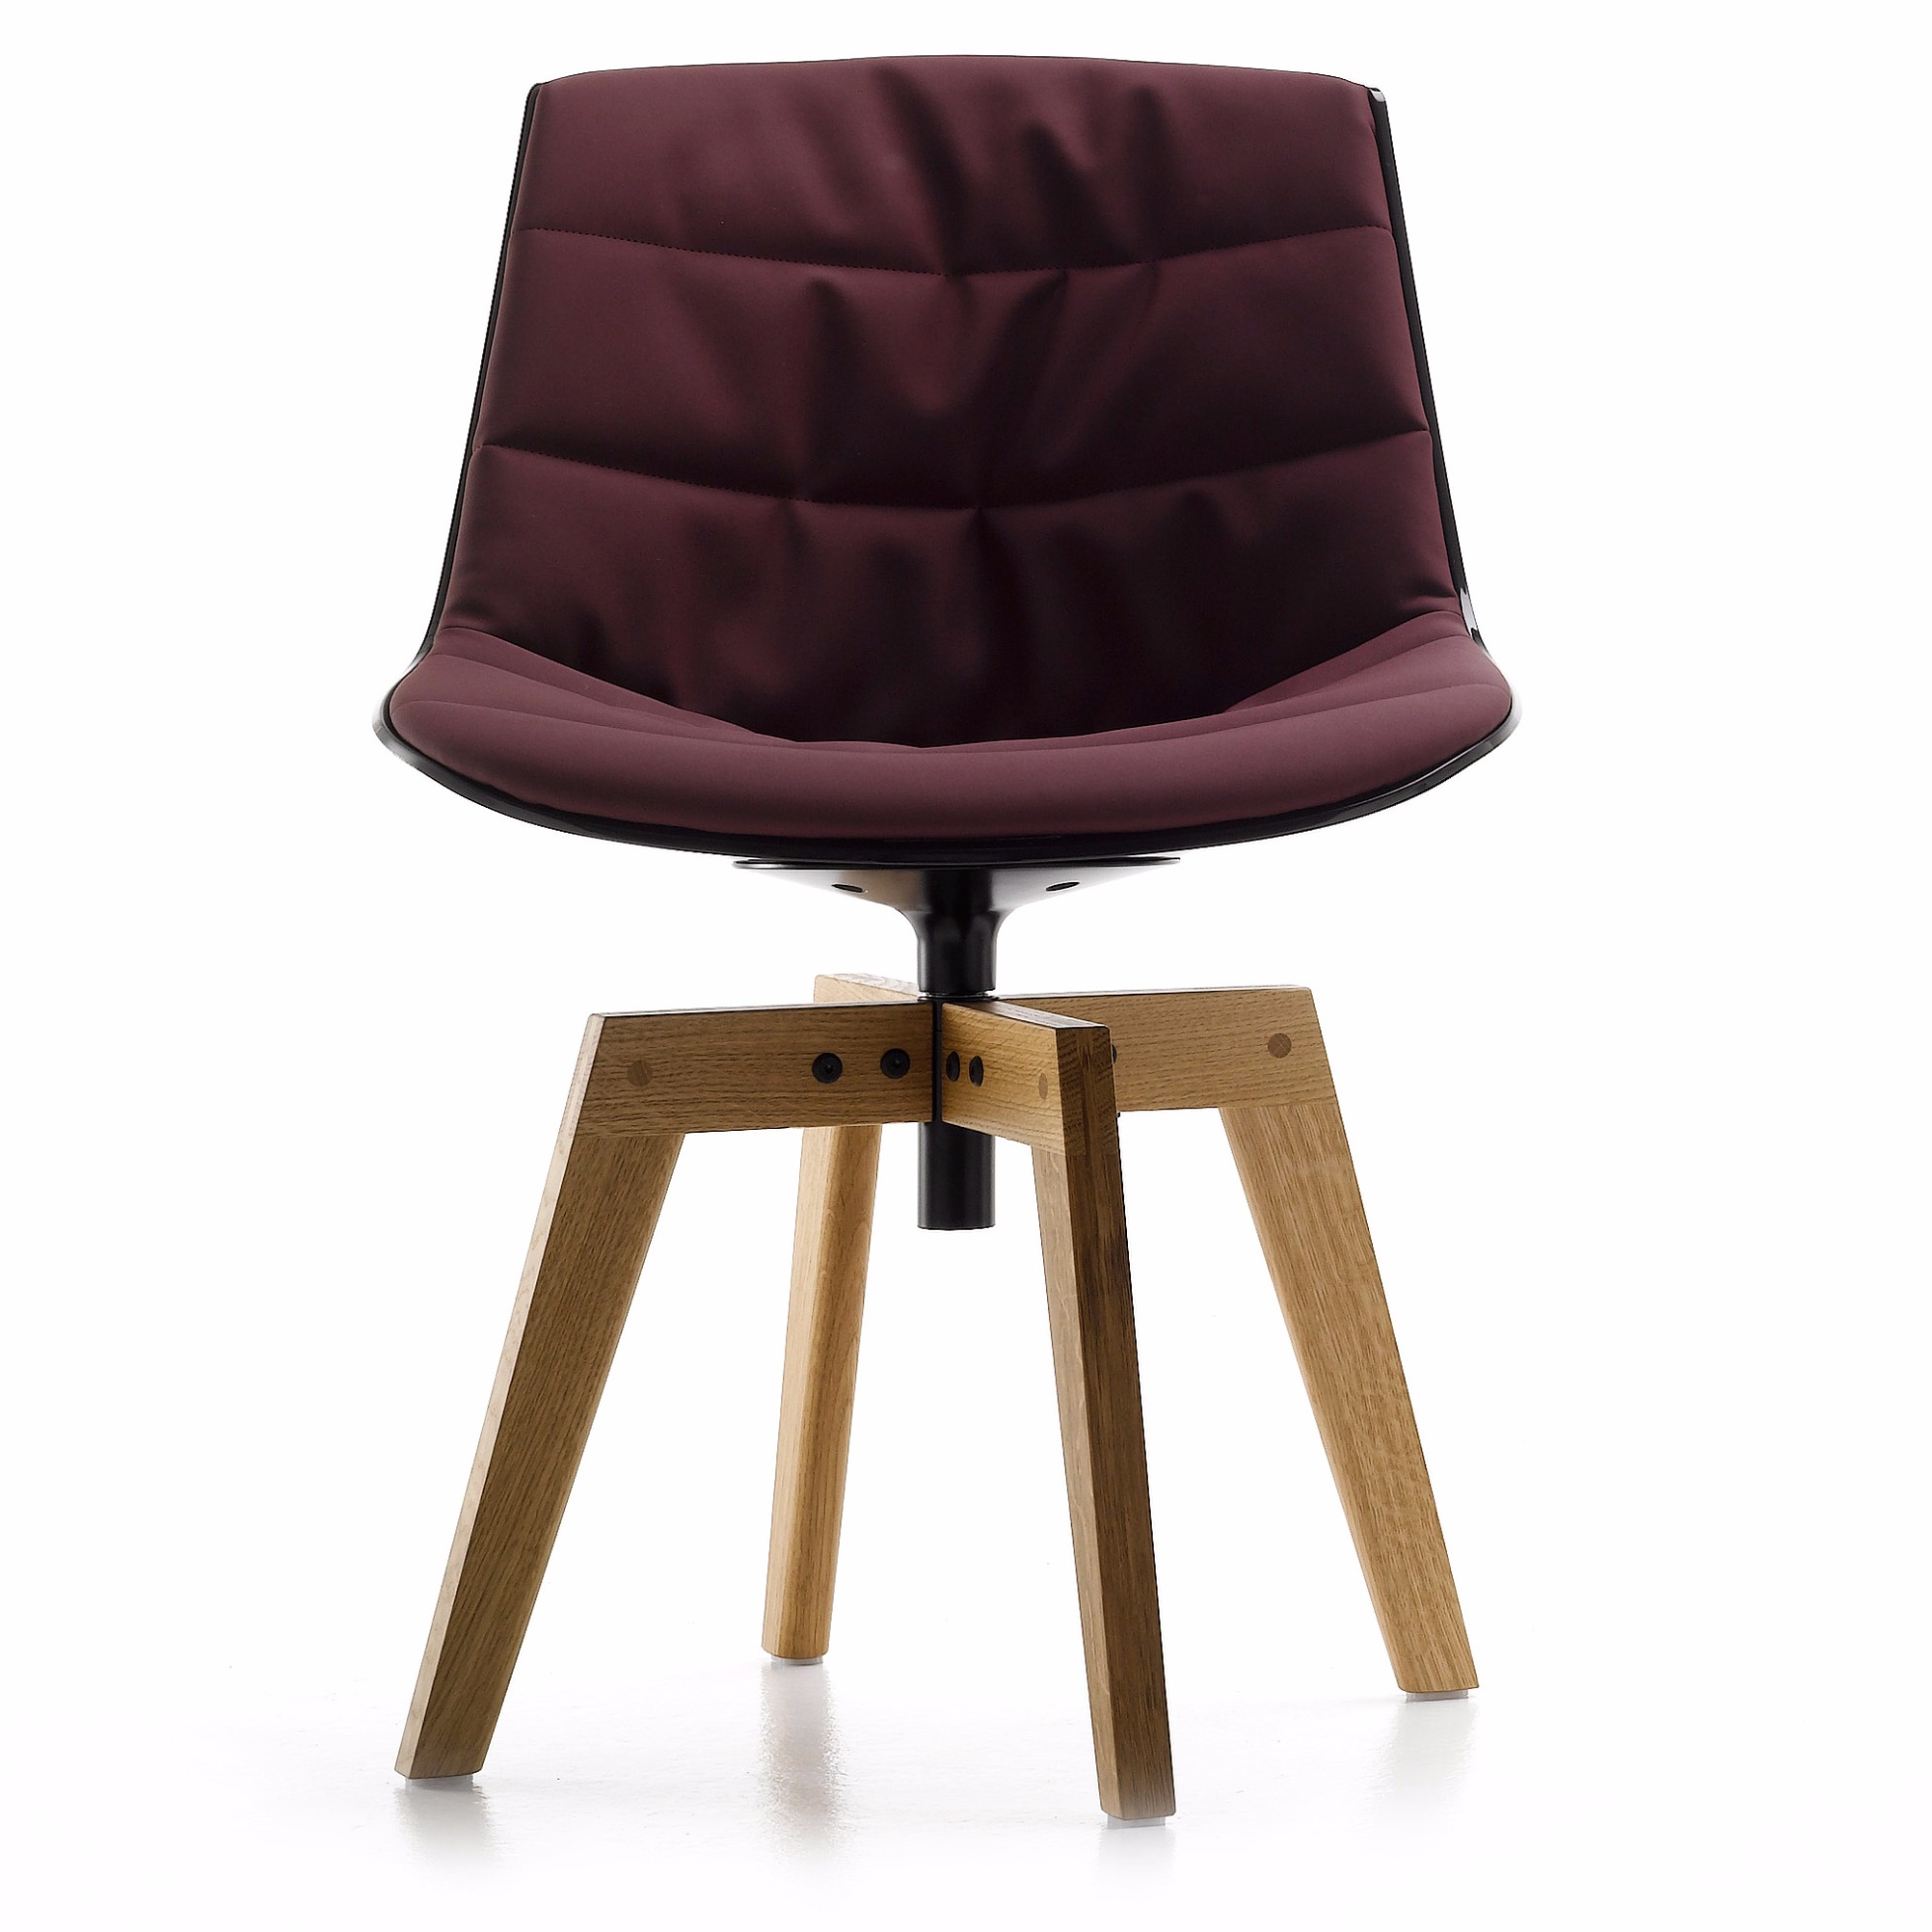 Upholstered Flow Chair By Mdf Italia With Oak Base